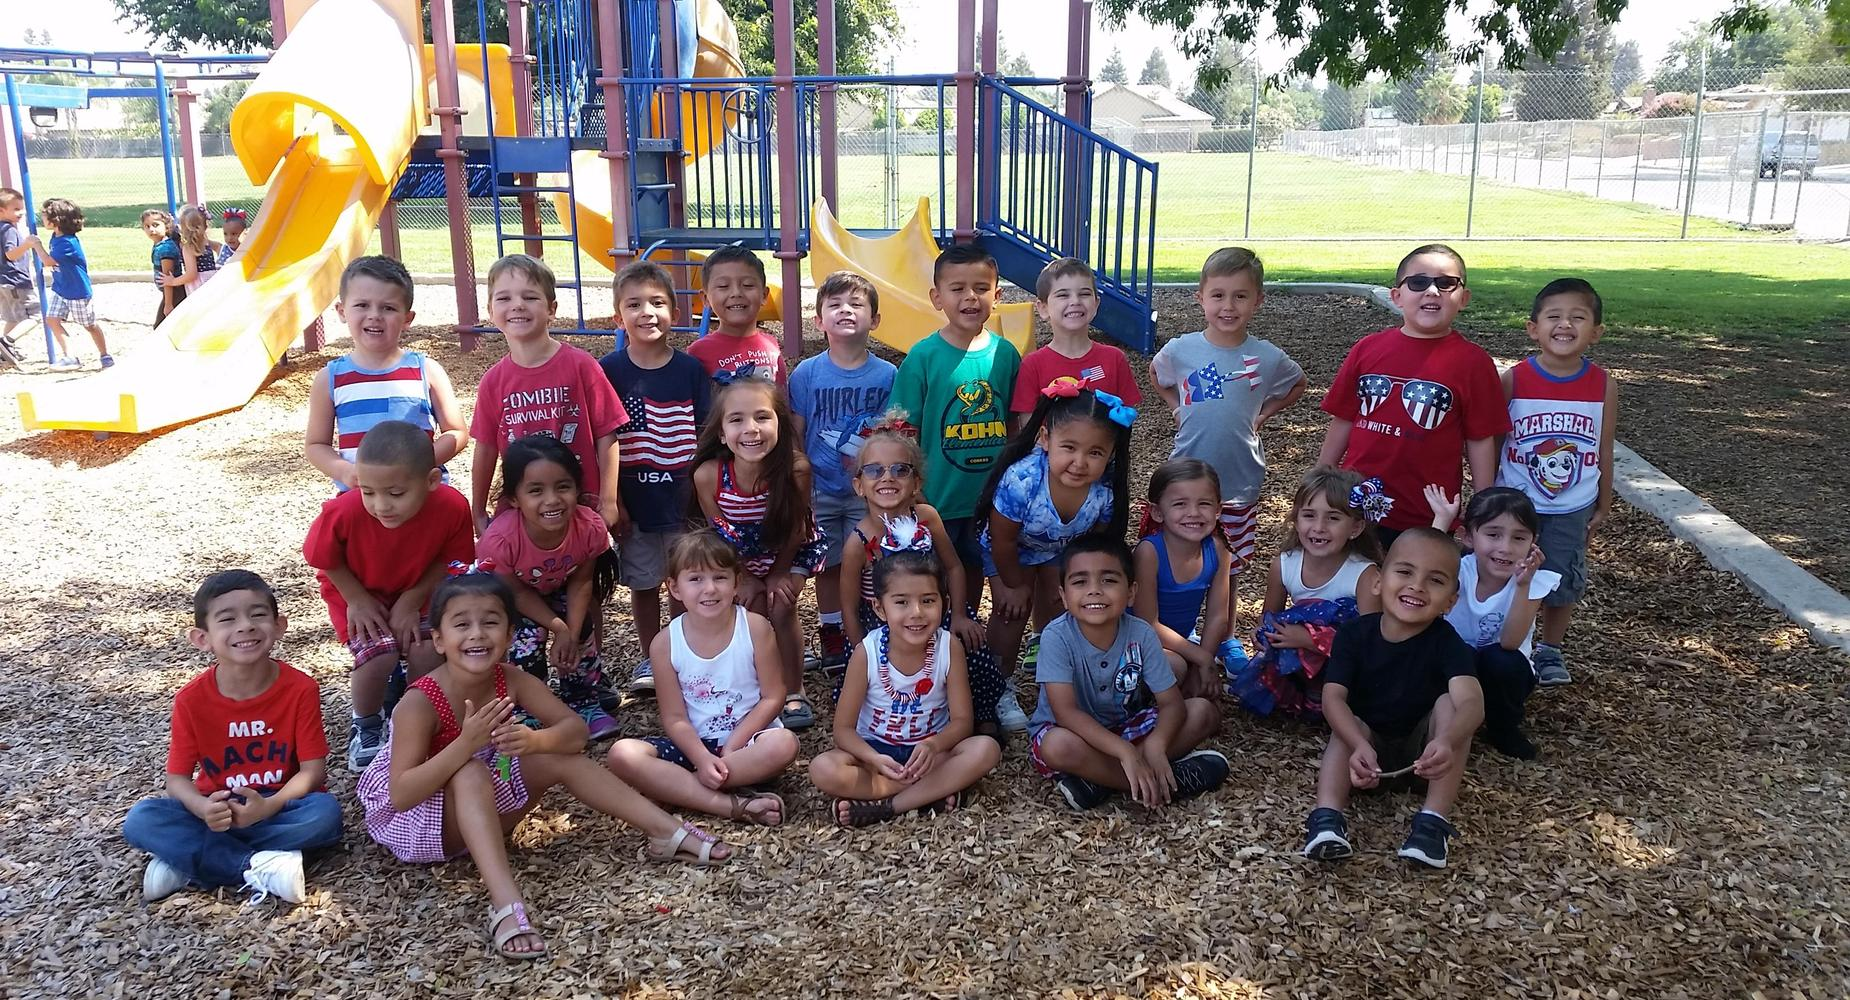 TK class posing by playground equipment.